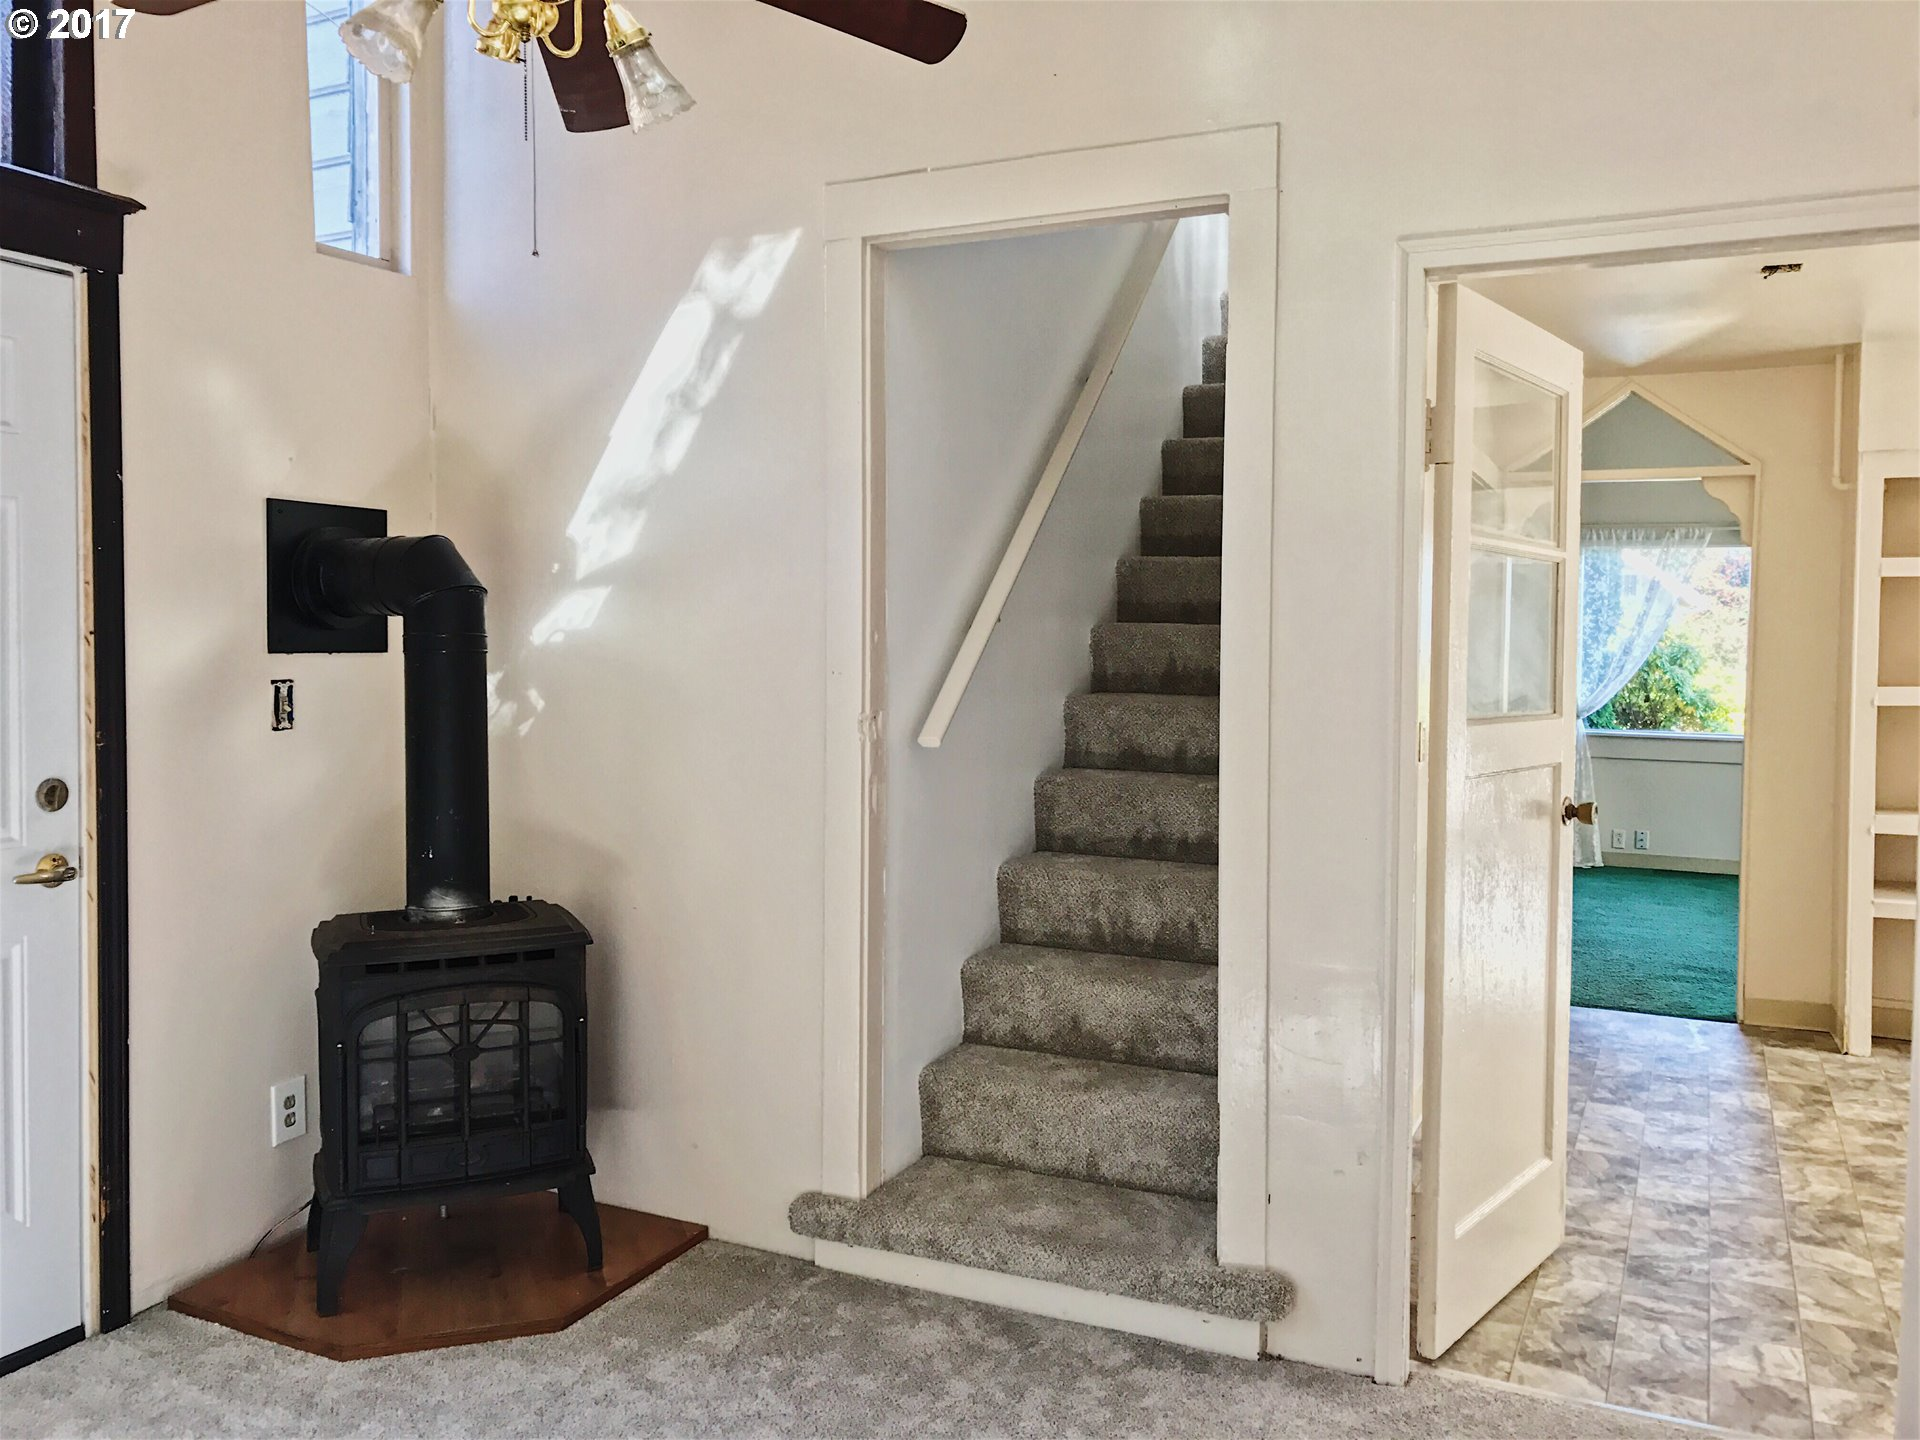 1420 sq. ft 3 bedrooms 2 bathrooms  House For Sale,Astoria, OR